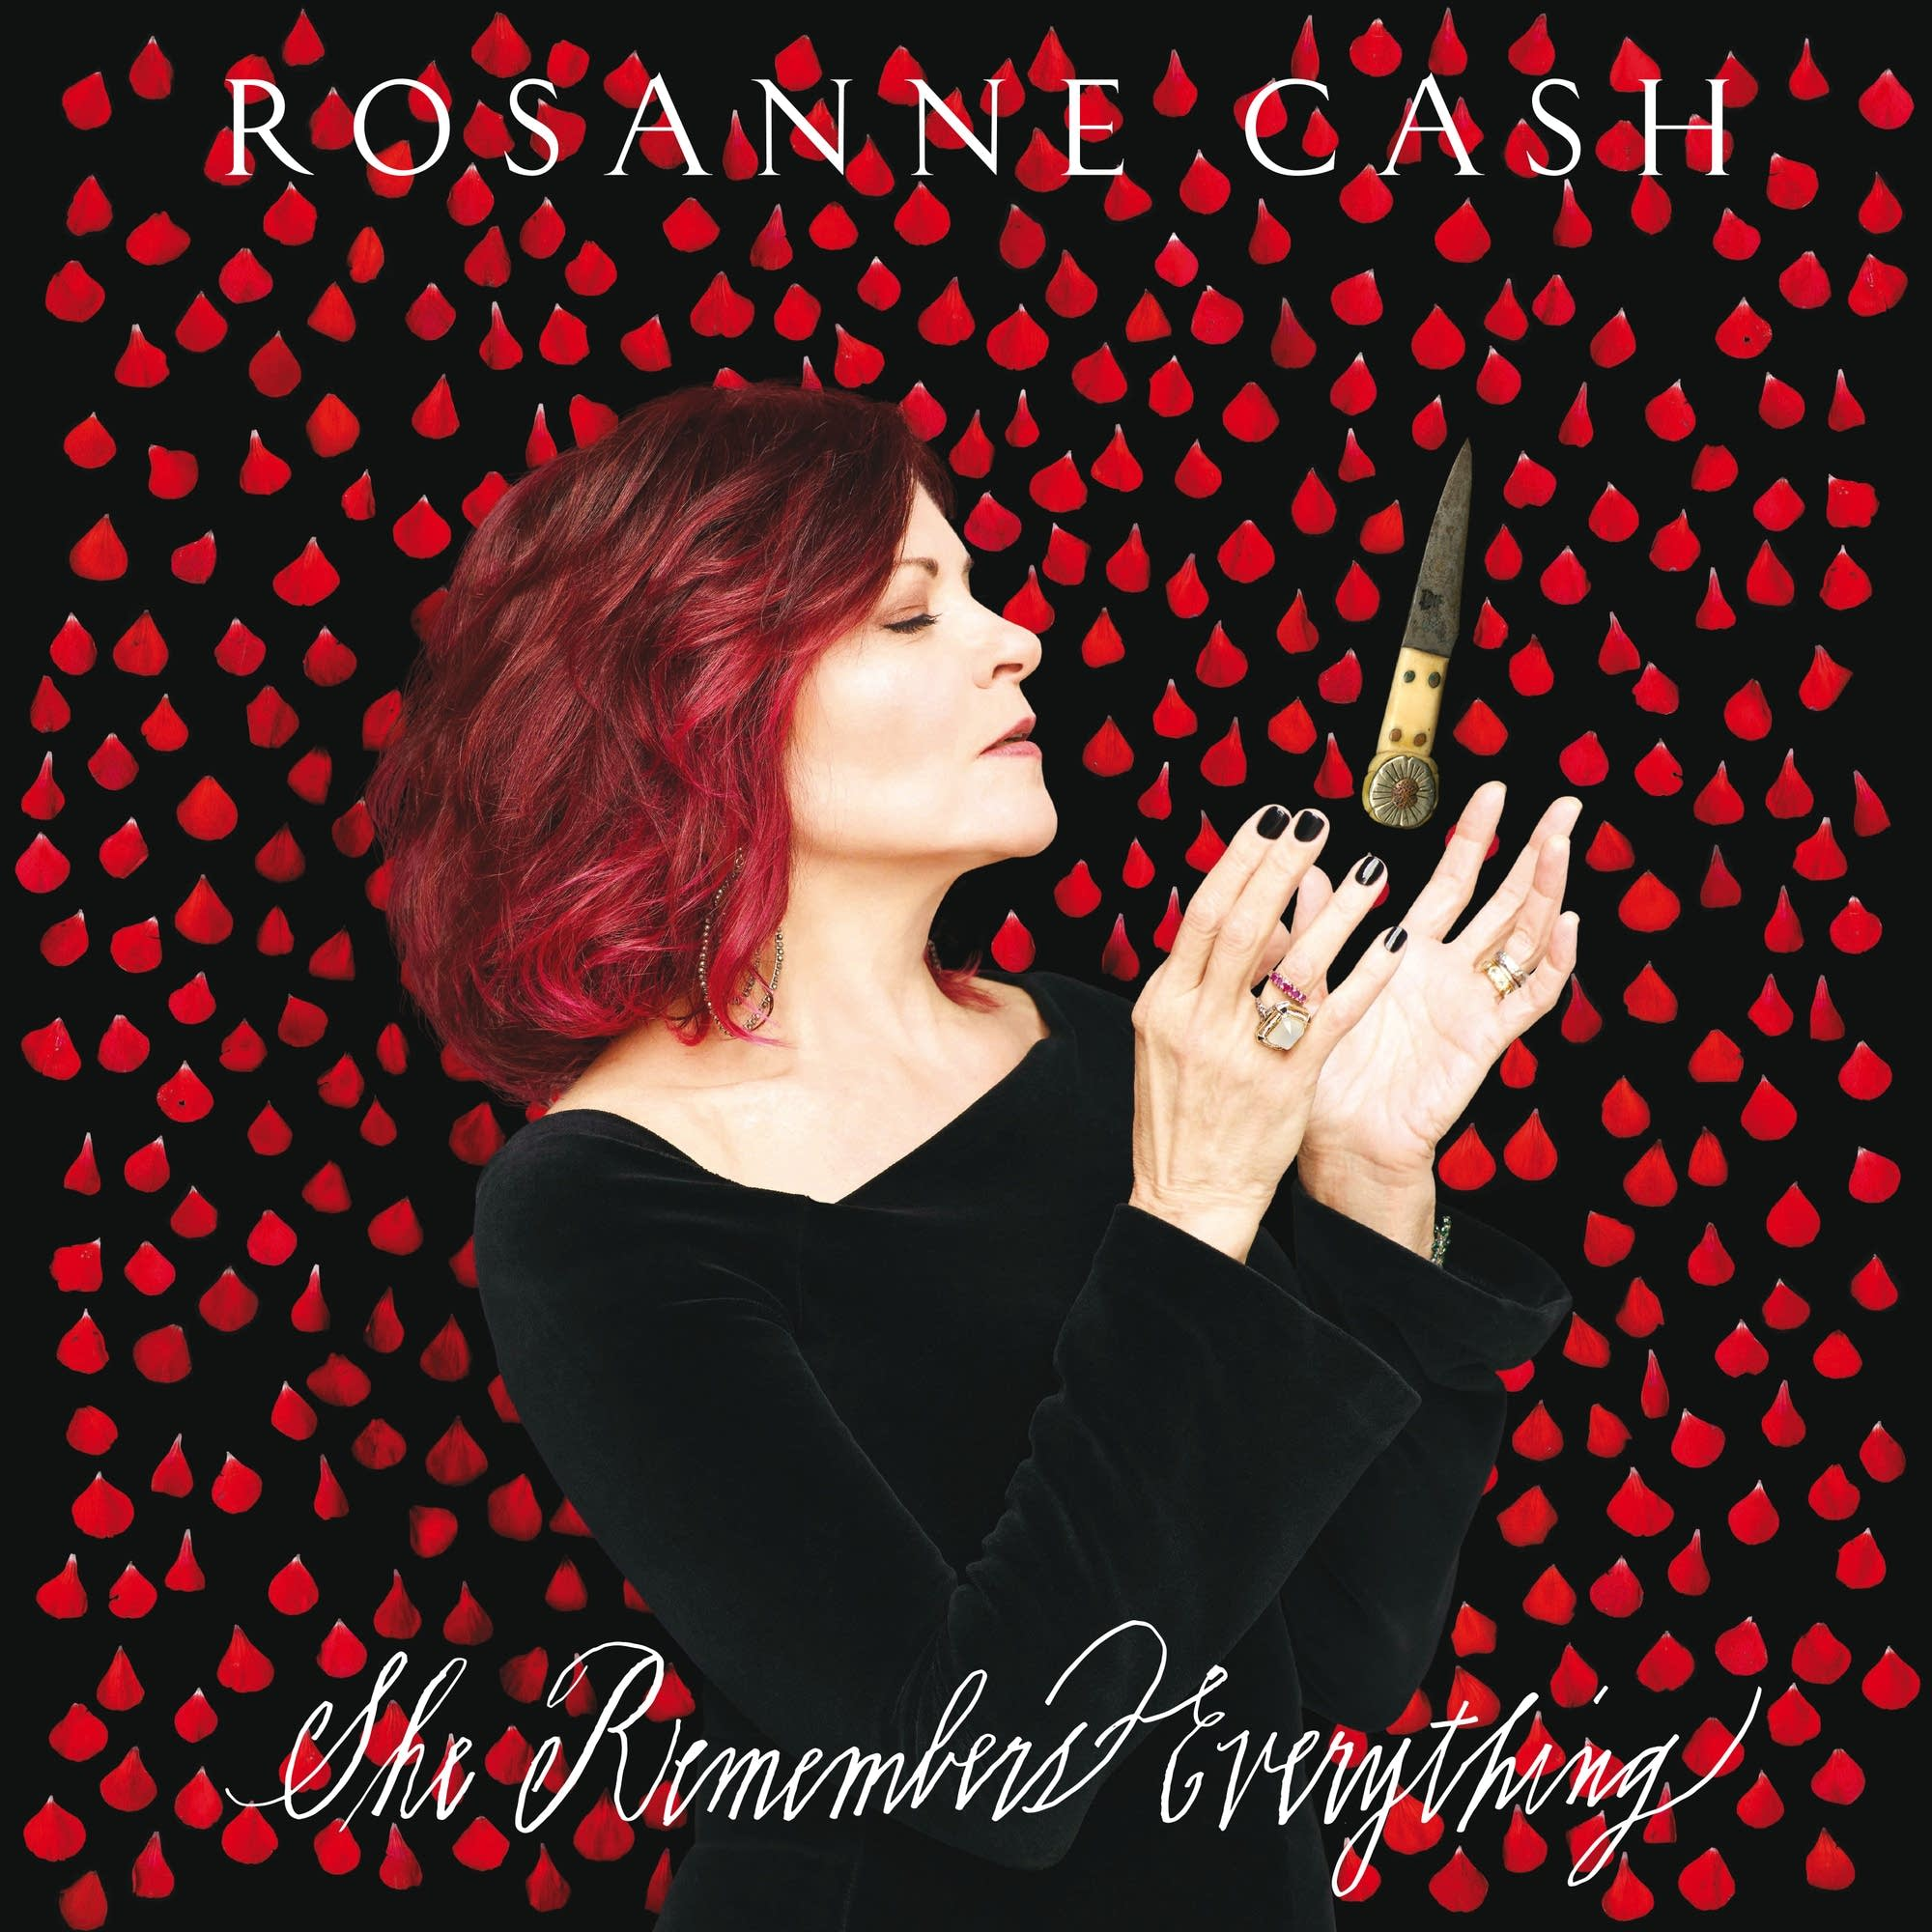 Rosanne Cash, 'She Remembers Everything'